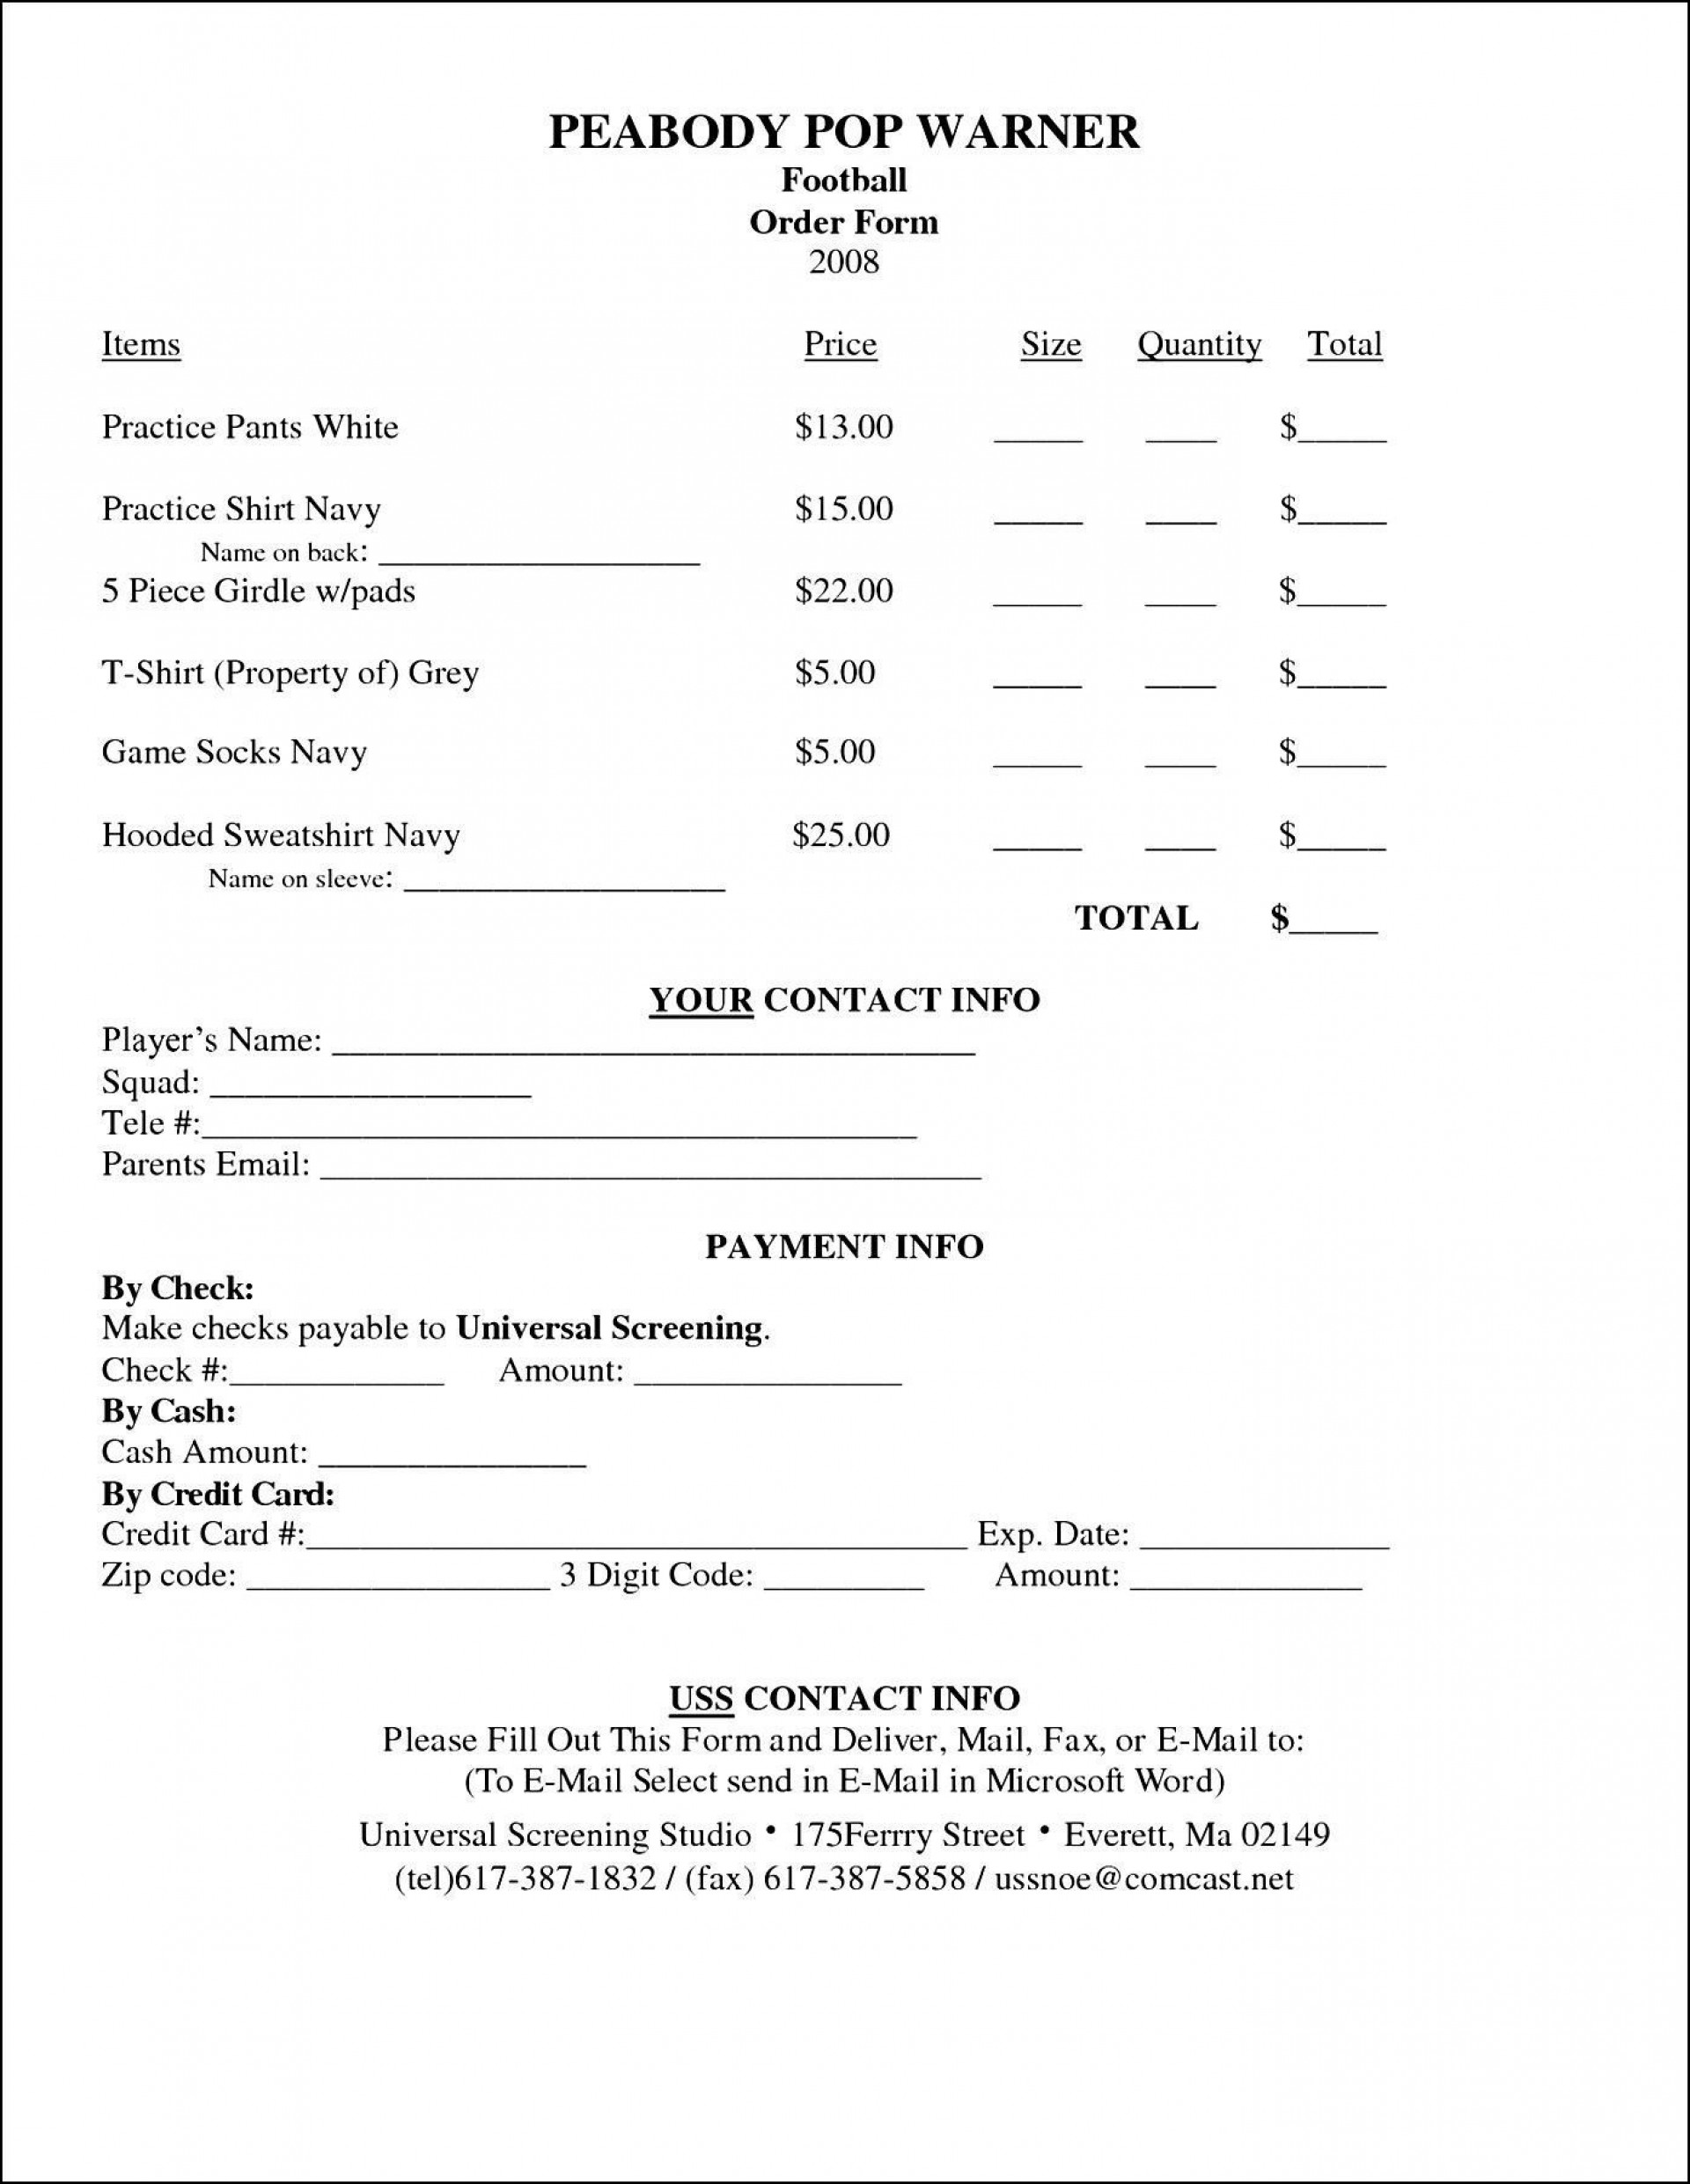 004 Incredible Free Order Form Template Word Picture  T Shirt Job Application Registration1920